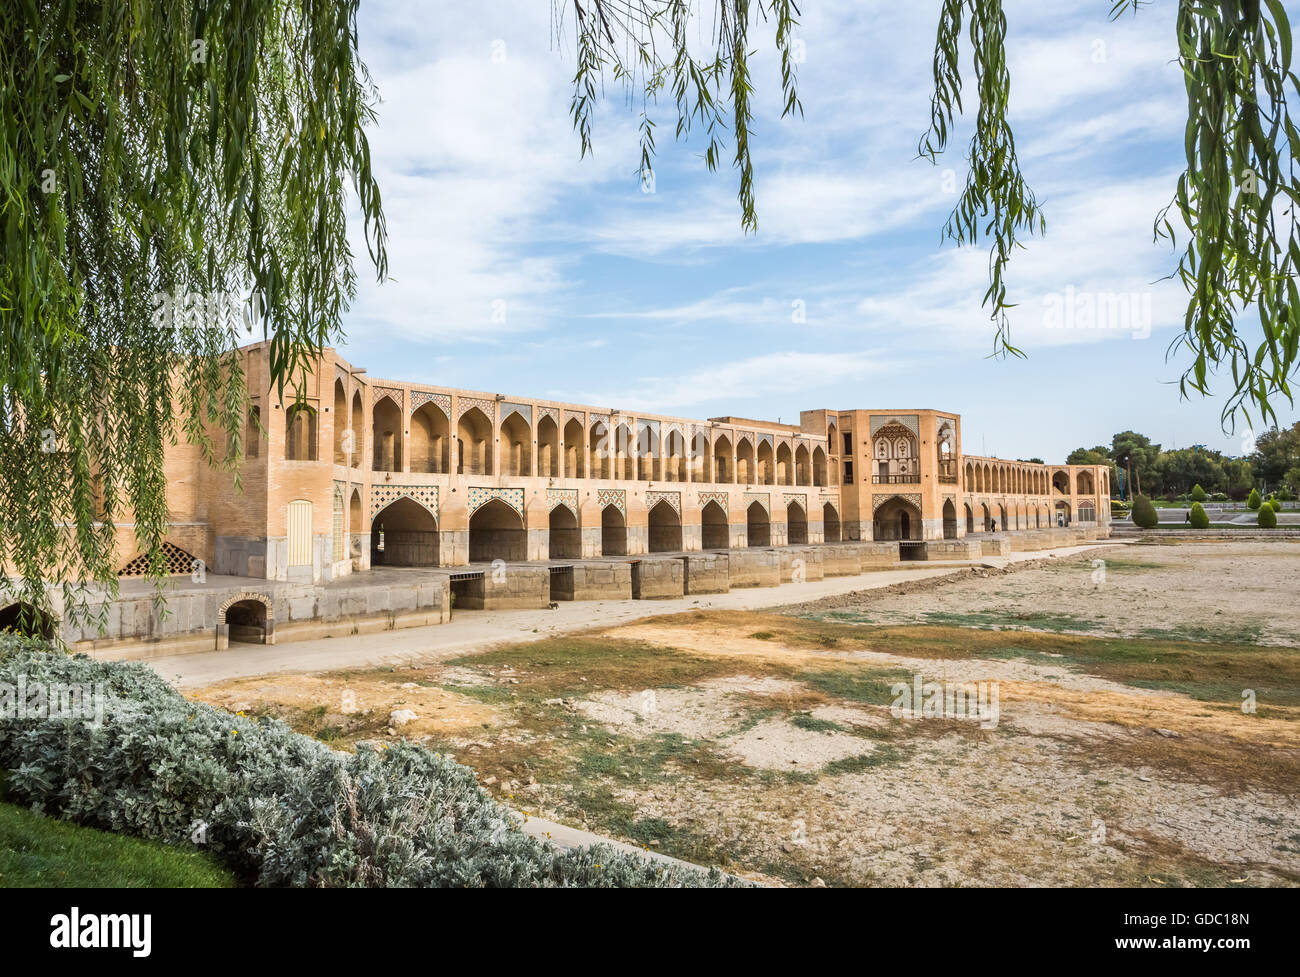 Iran,Esfahan City,Si-o-Sej Bridge,UNESCO,world heritage, - Stock Image